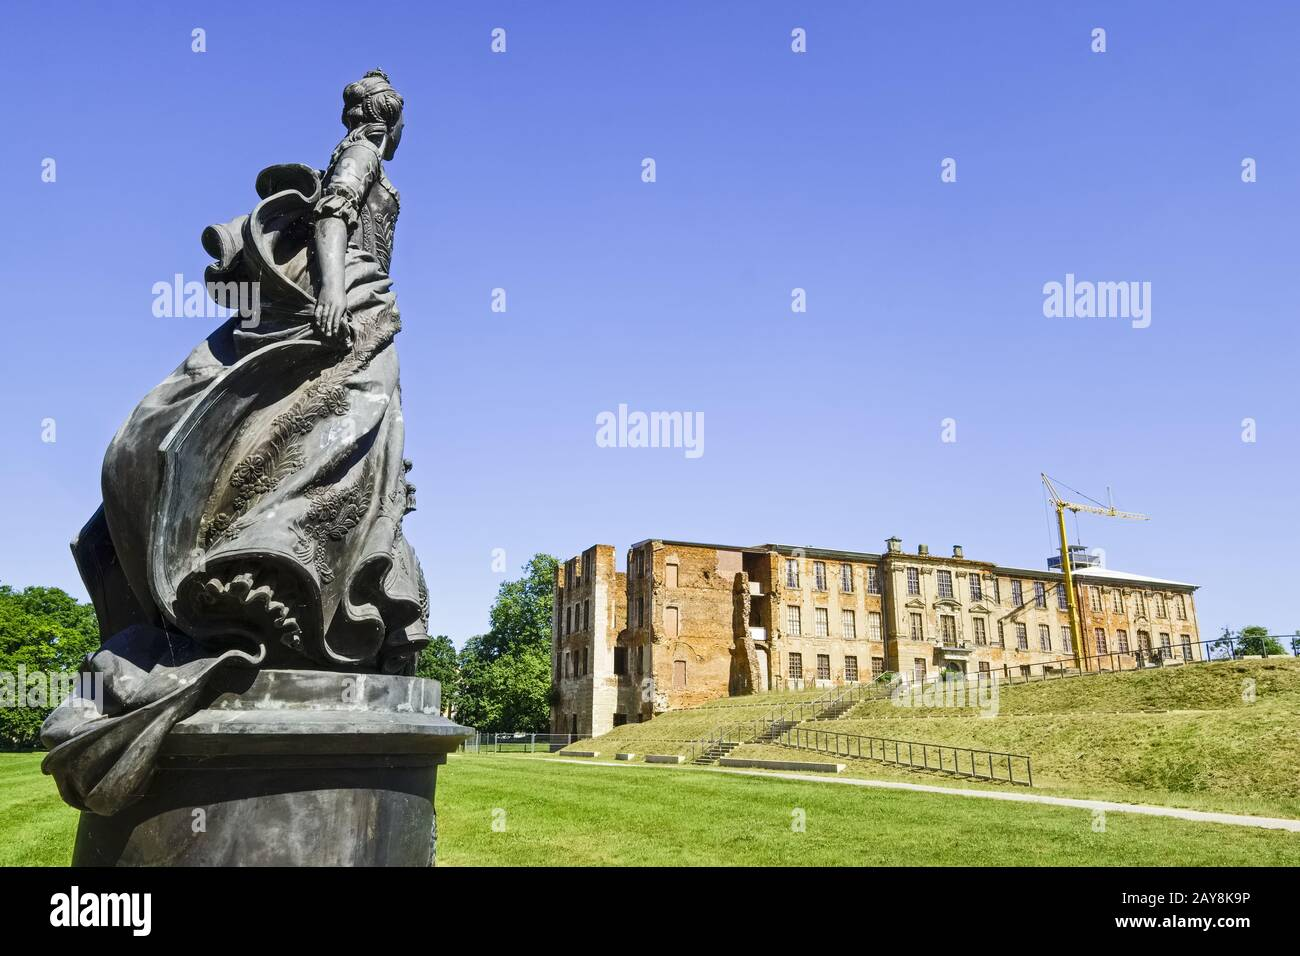 Monument Katharina II., east wing of Zerbst Castle, Zerbst/Anhalt, Saxony-Anhalt, Germany Stock Photo